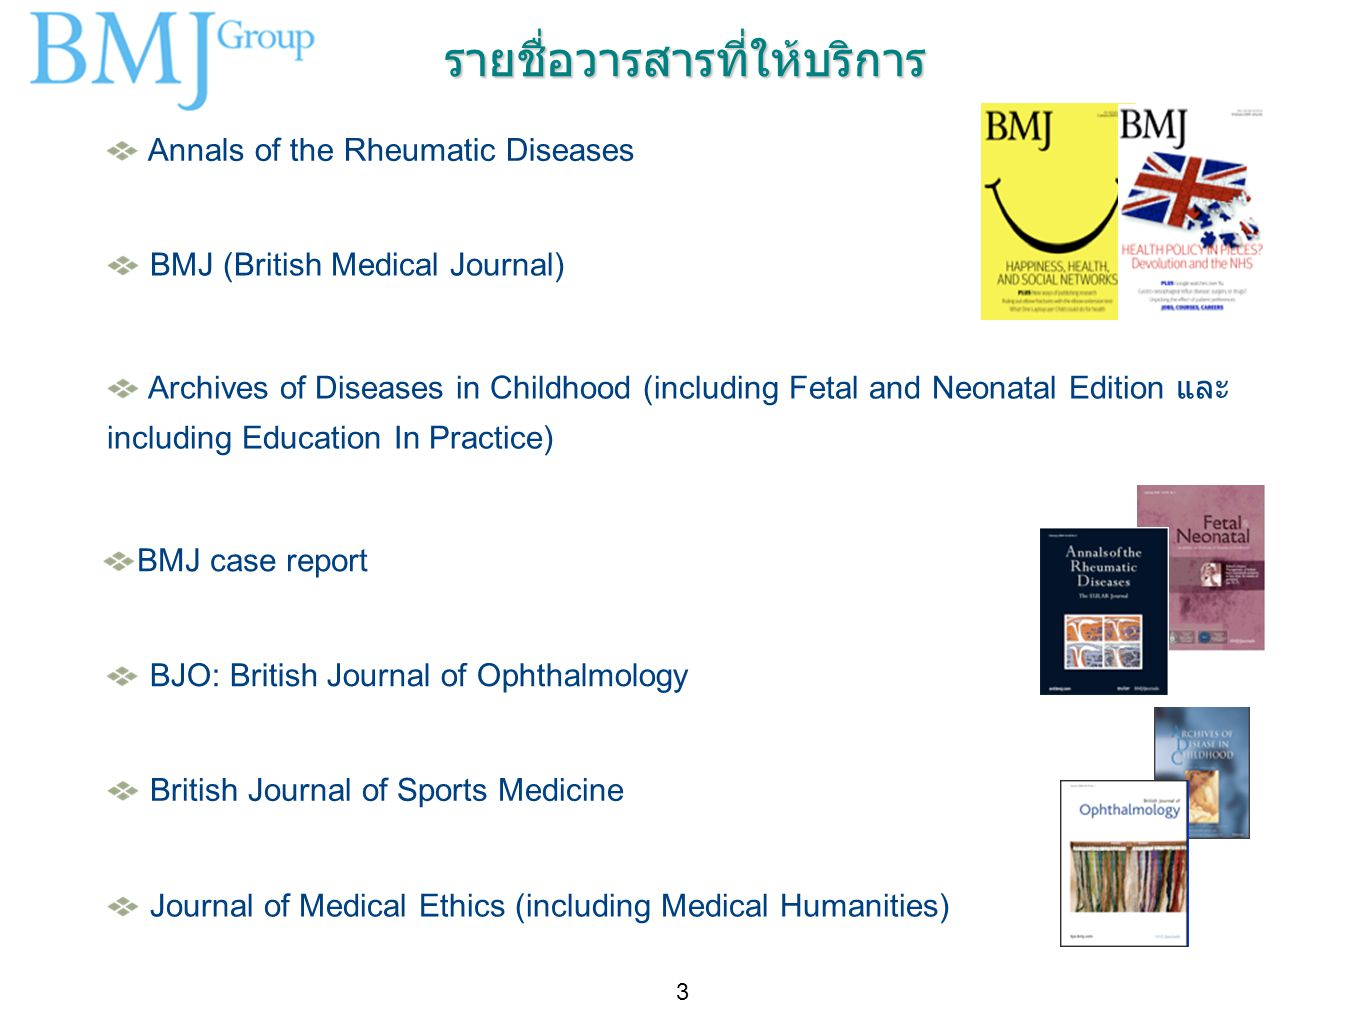 4 Gut Evidence-Based Nursing Evidence-Based Mental Health Evidence-Based Medicine Emergency Medicine Journal Injury Prevention Heart รายชื่อวารสารที่ให้บริการ ( ต่อ ) Journal of Clinical Pathology (including Molecular Pathology which has now merged with JCP) Journal of Epidemiology and Community Health